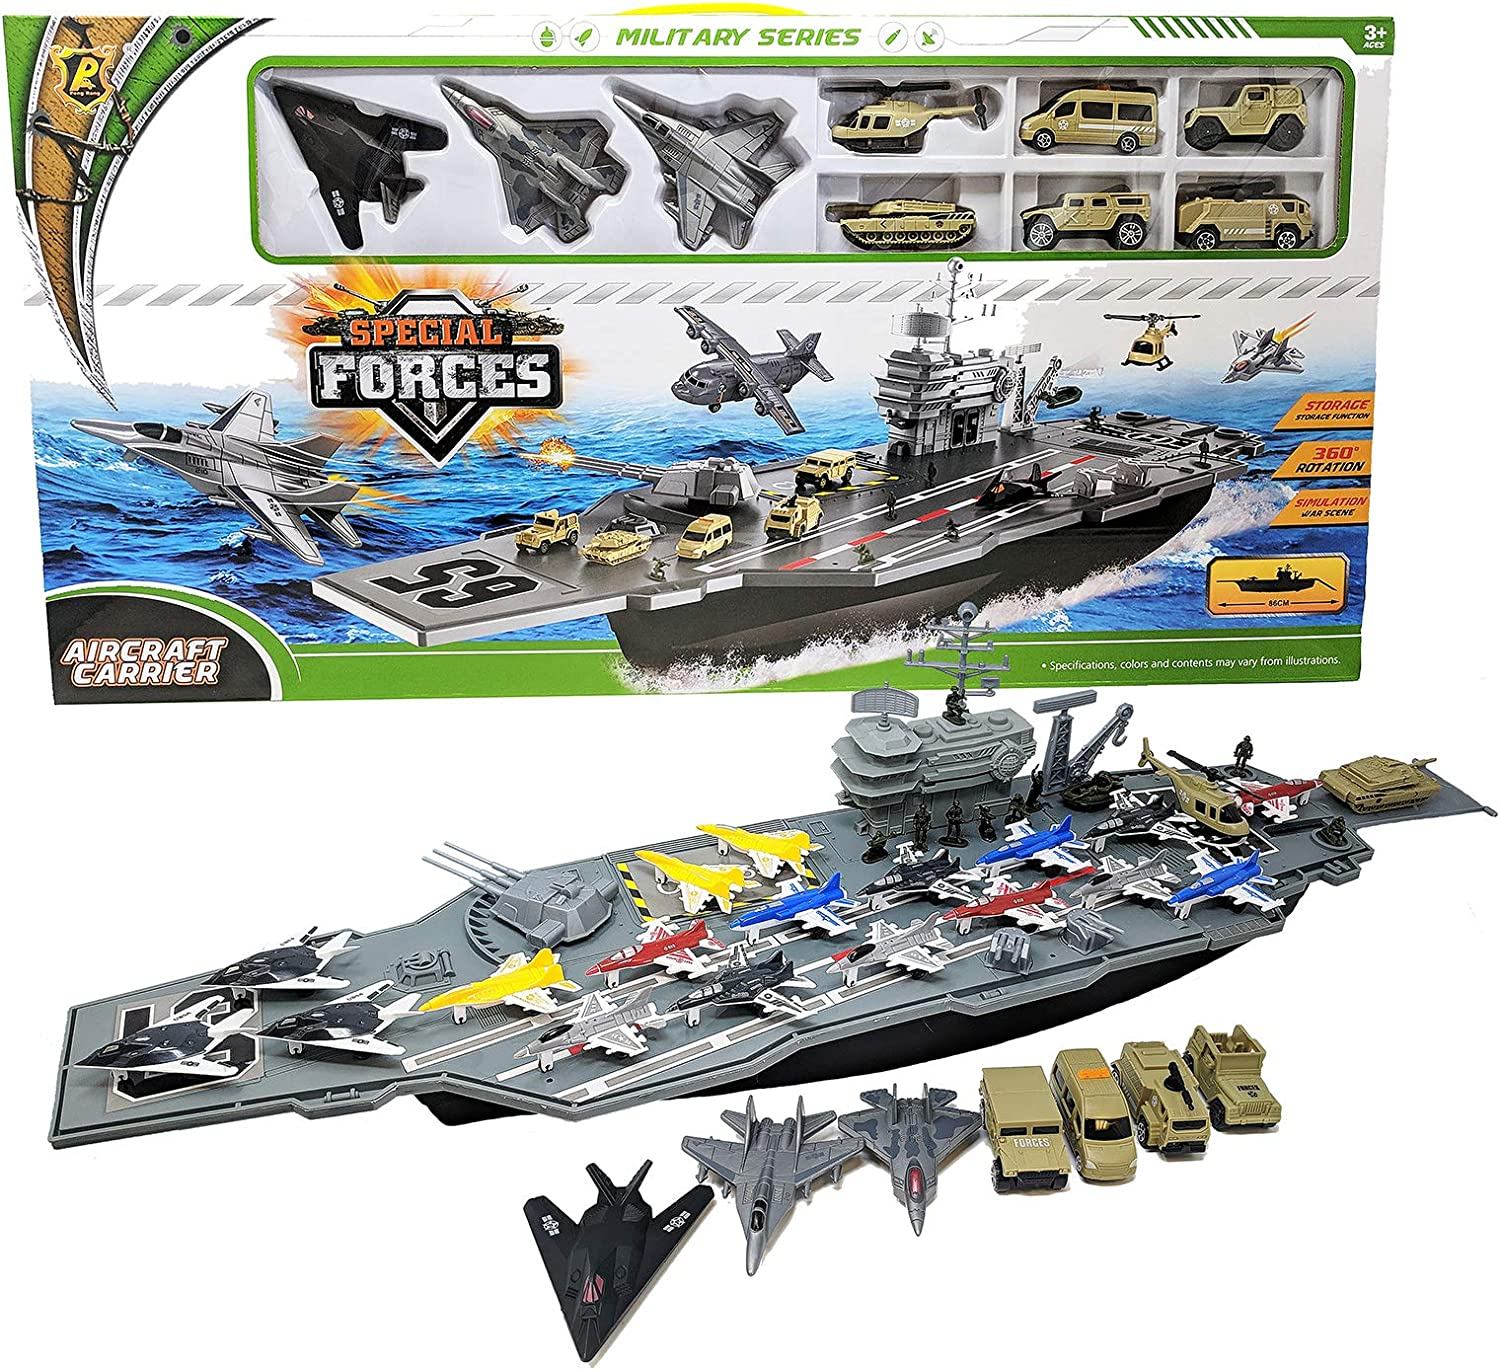 30 Aircraft Carrier Toy Playset with Sound Effects and Fighter Jets